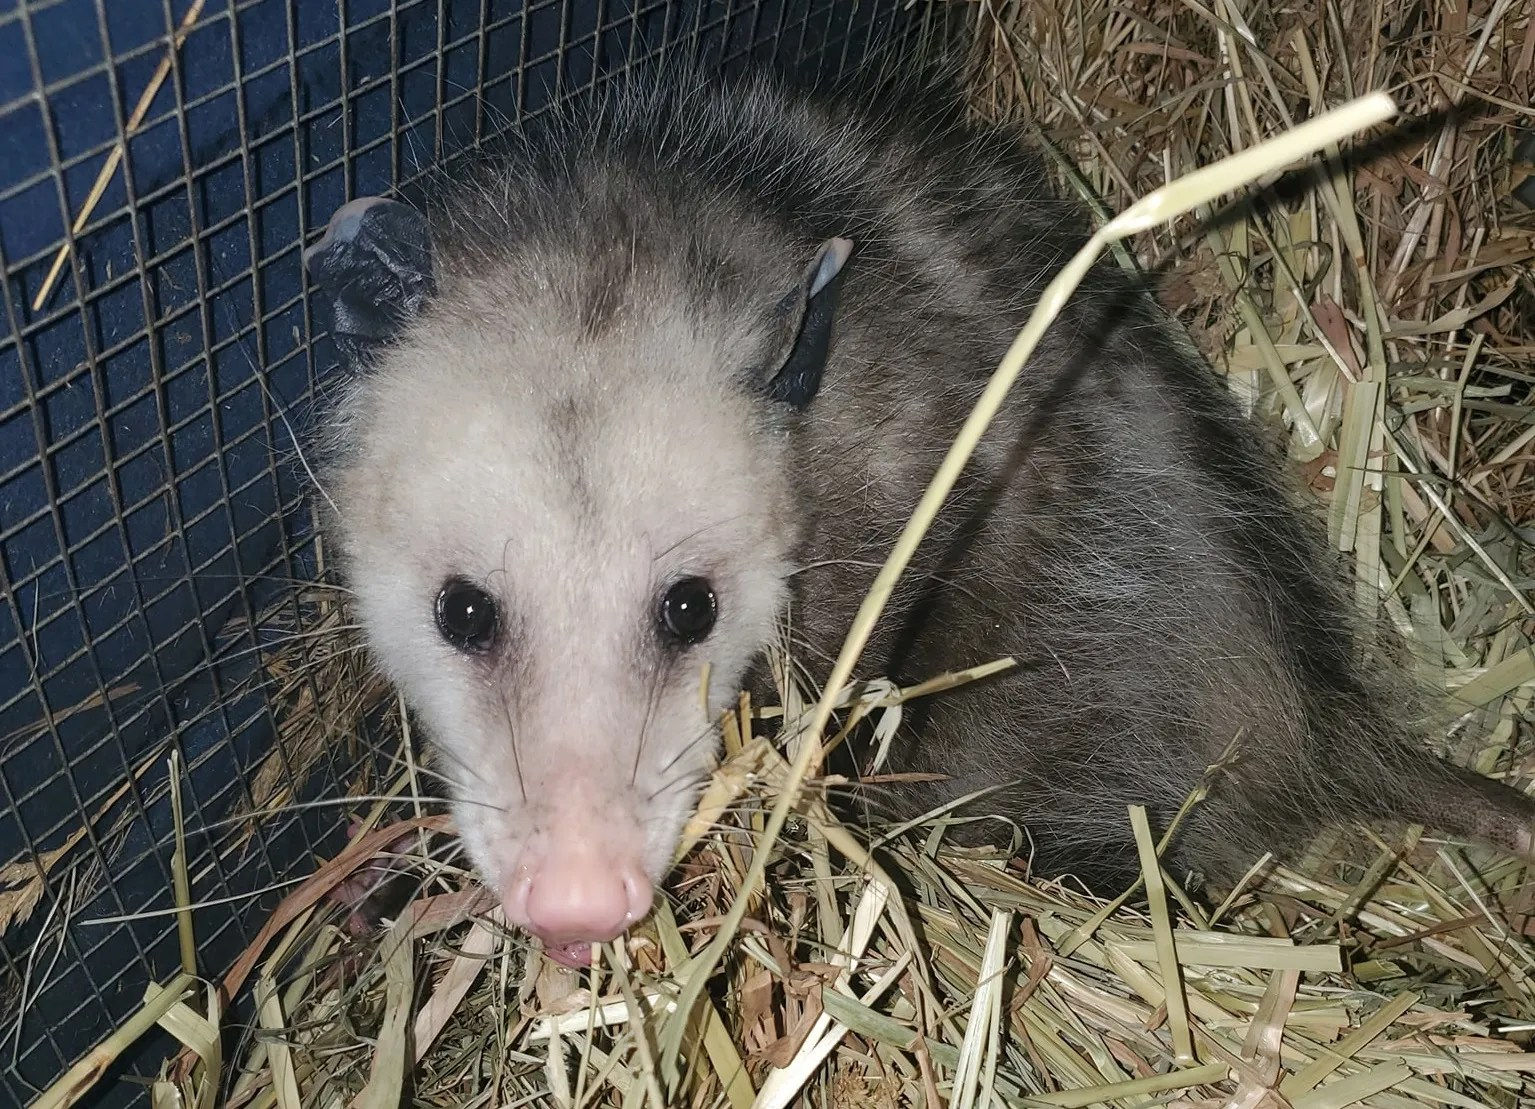 An opossum is one of many animals now being cared for by David and Cheryl Cox, of Maine. The couple run We Are Their Voice Wildlife Care and Rescue LLC.